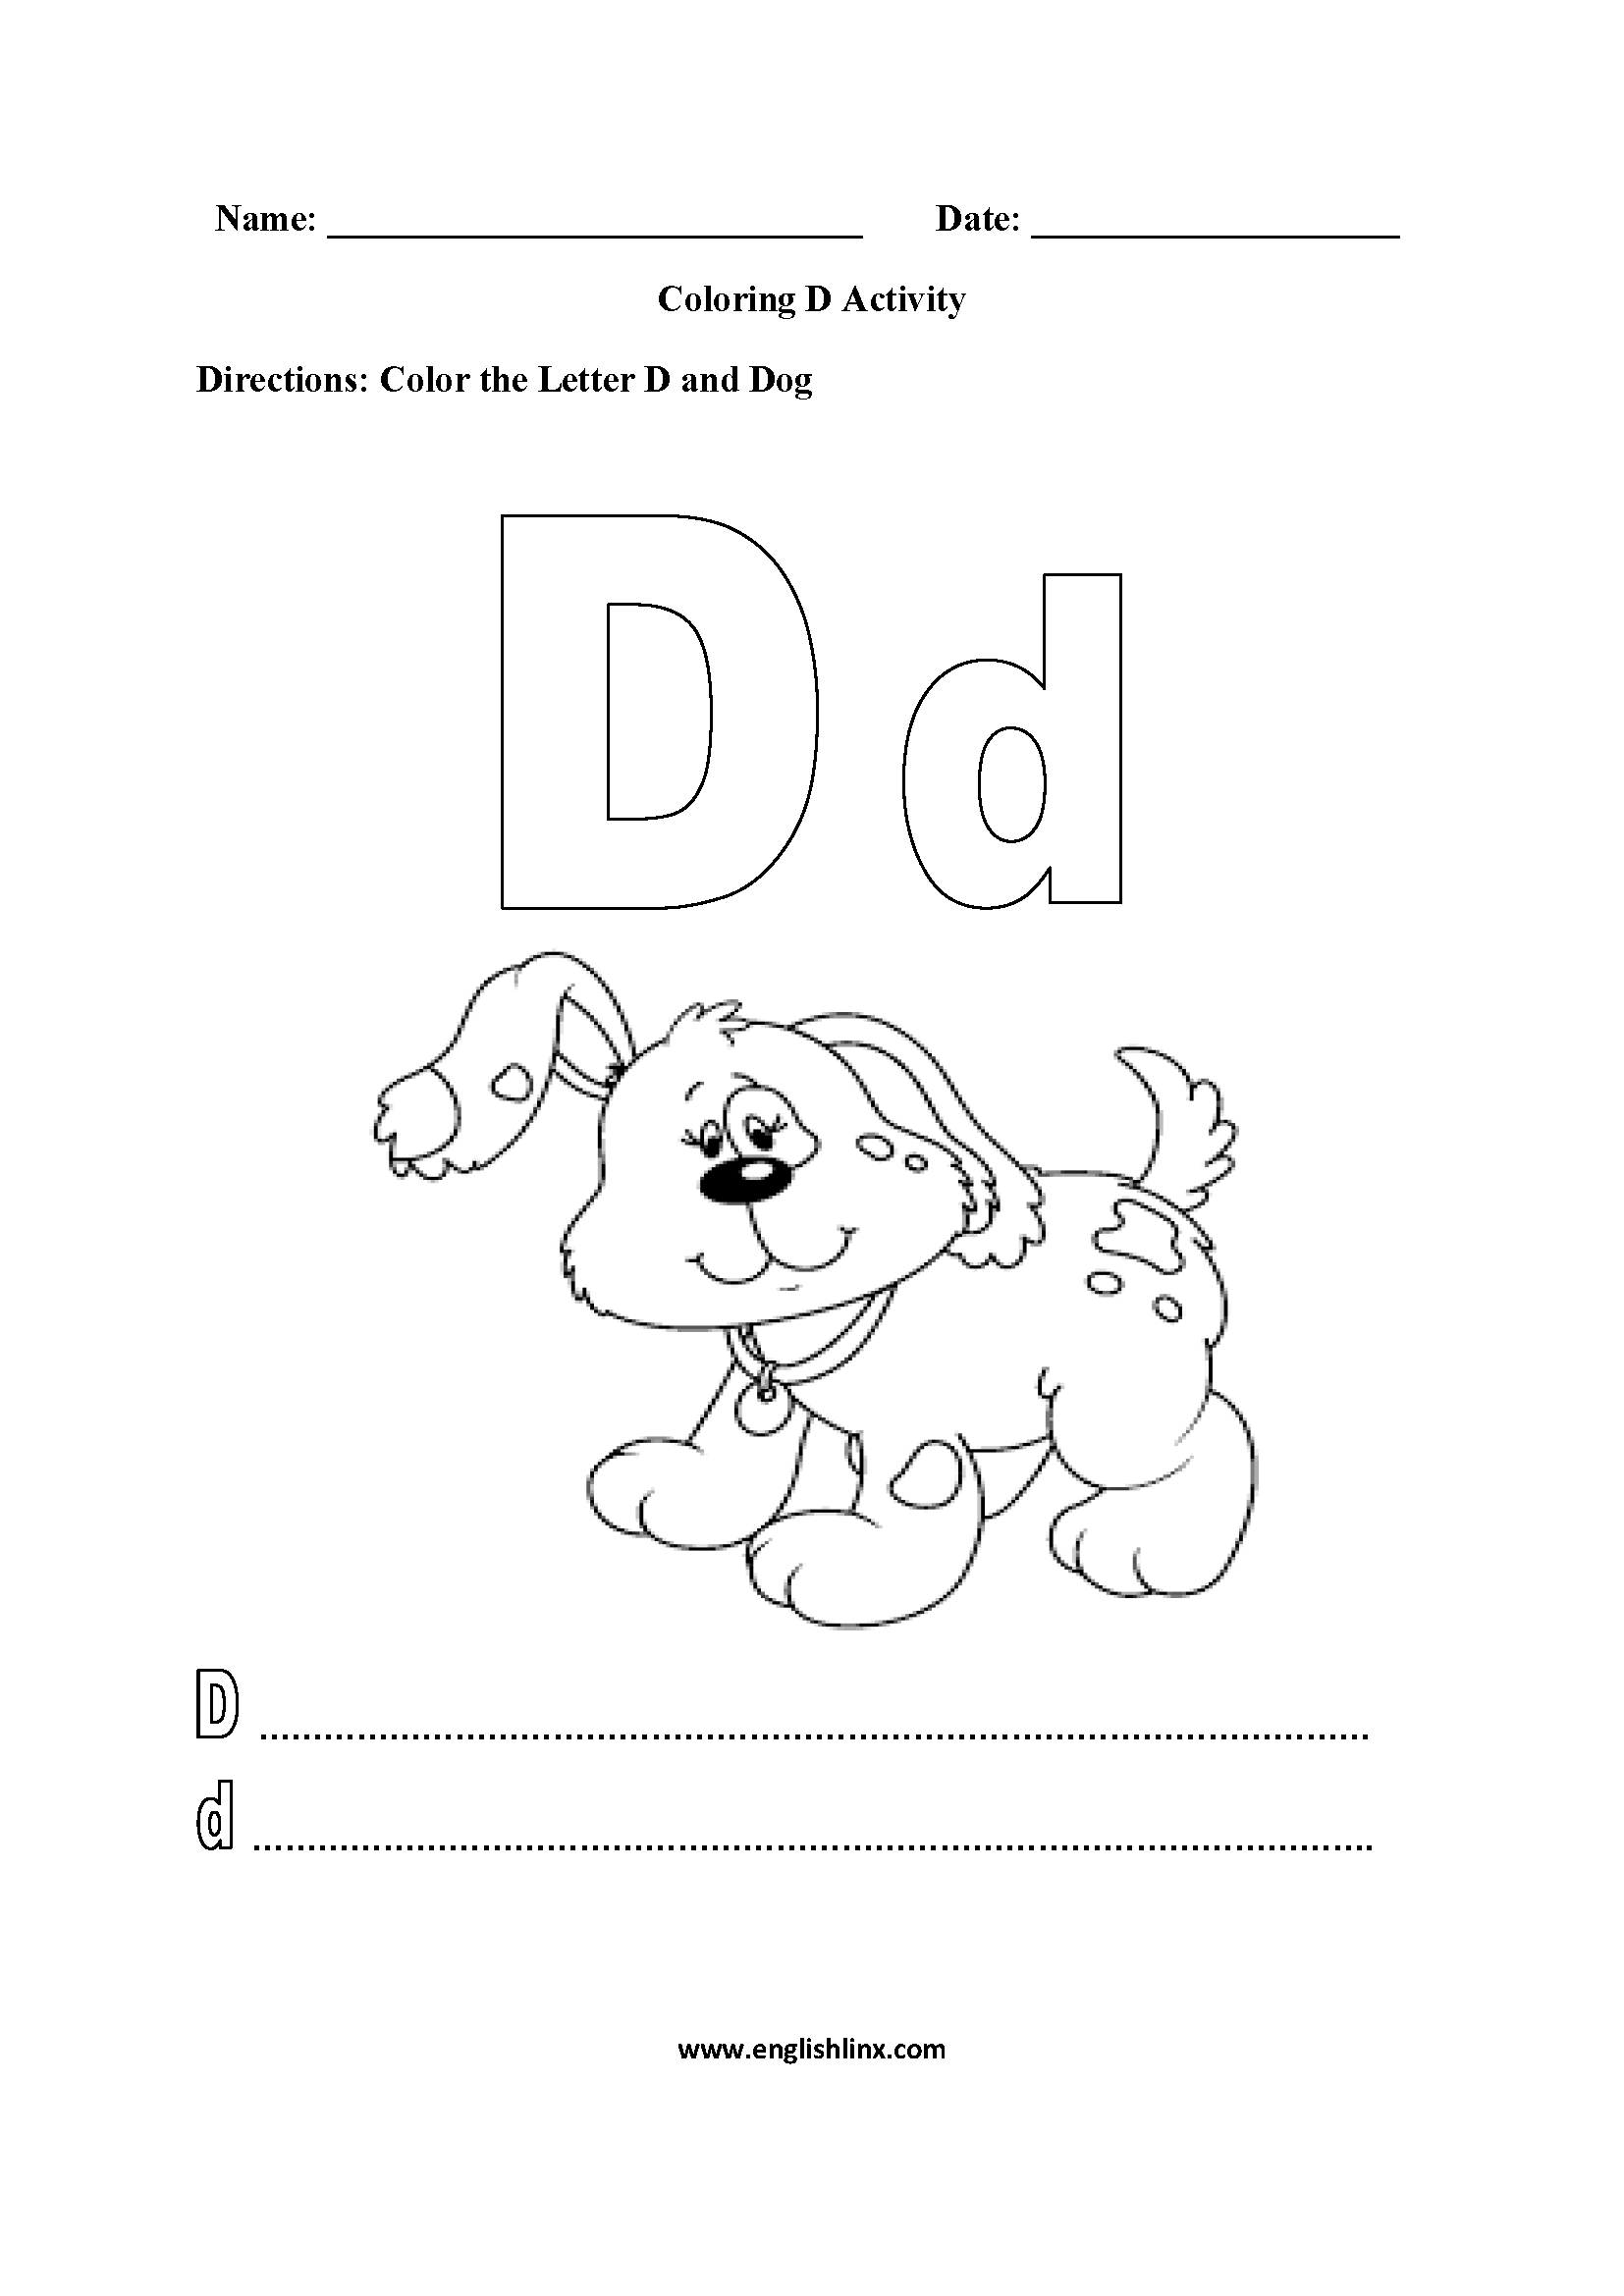 Coloring D Worksheet